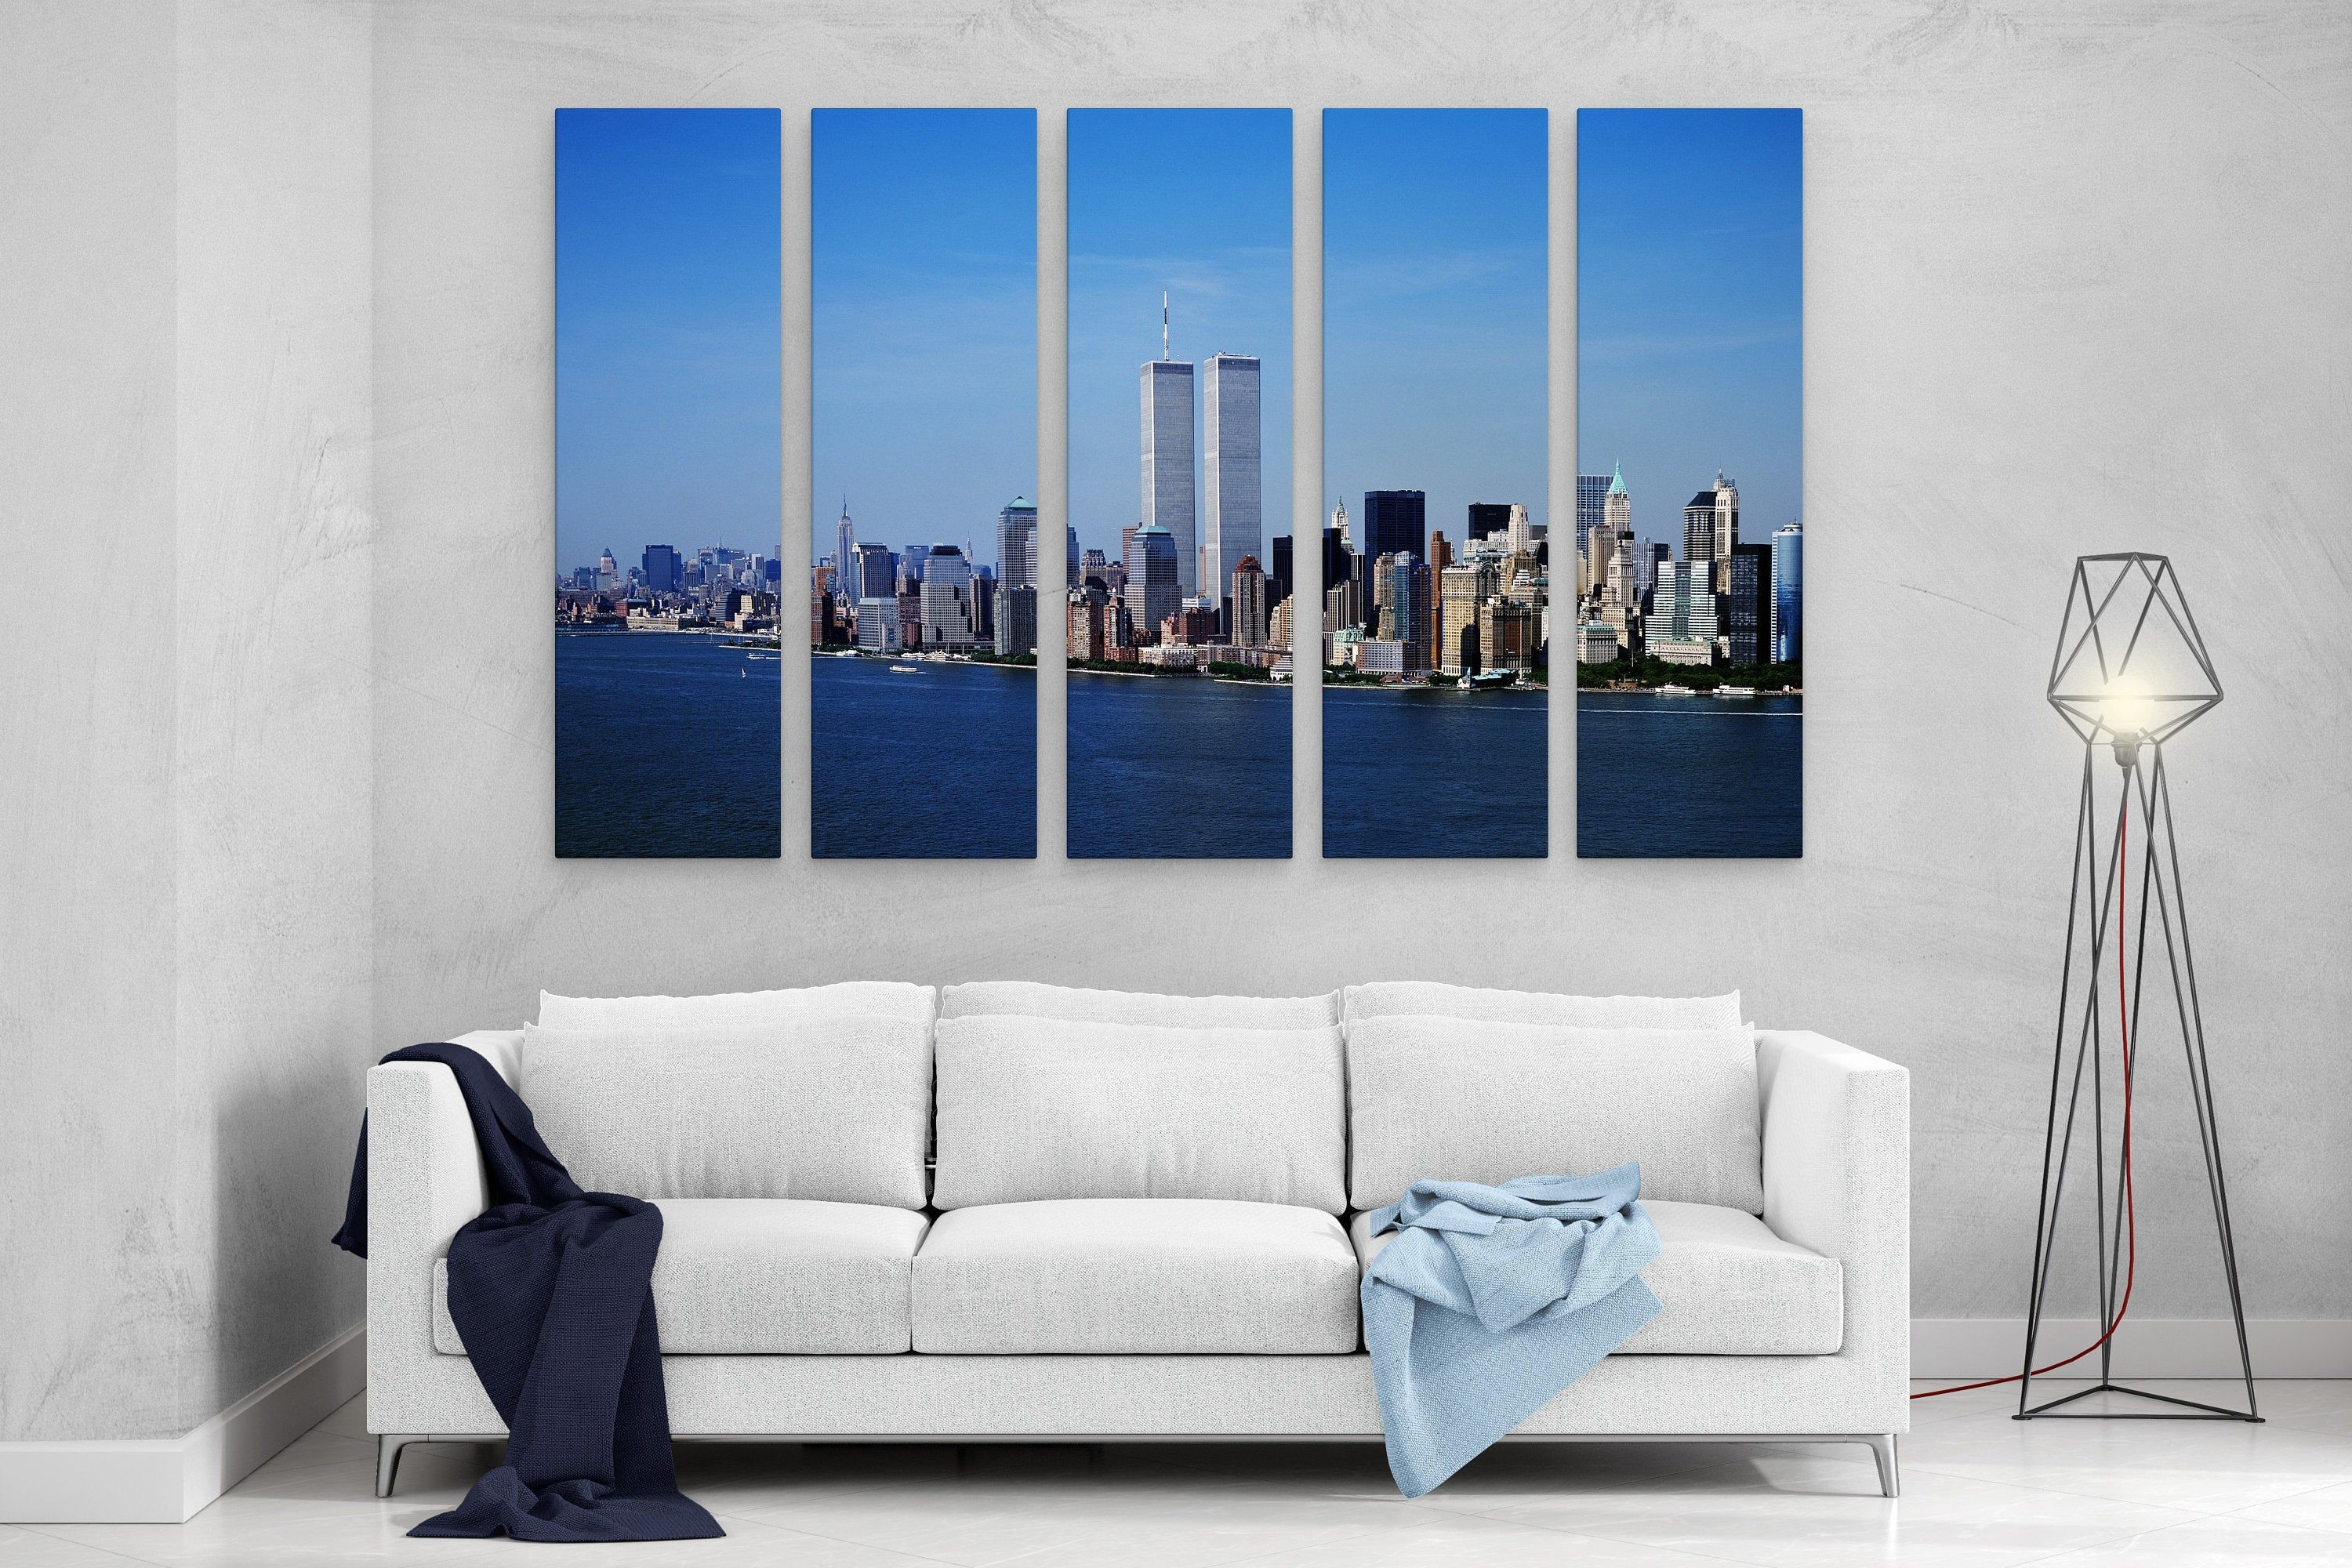 NEW YORK TWIN TOWERS ABSTRACT CANVAS PRINT PICTURE WALL ART HOME DECOR FREE P/&P